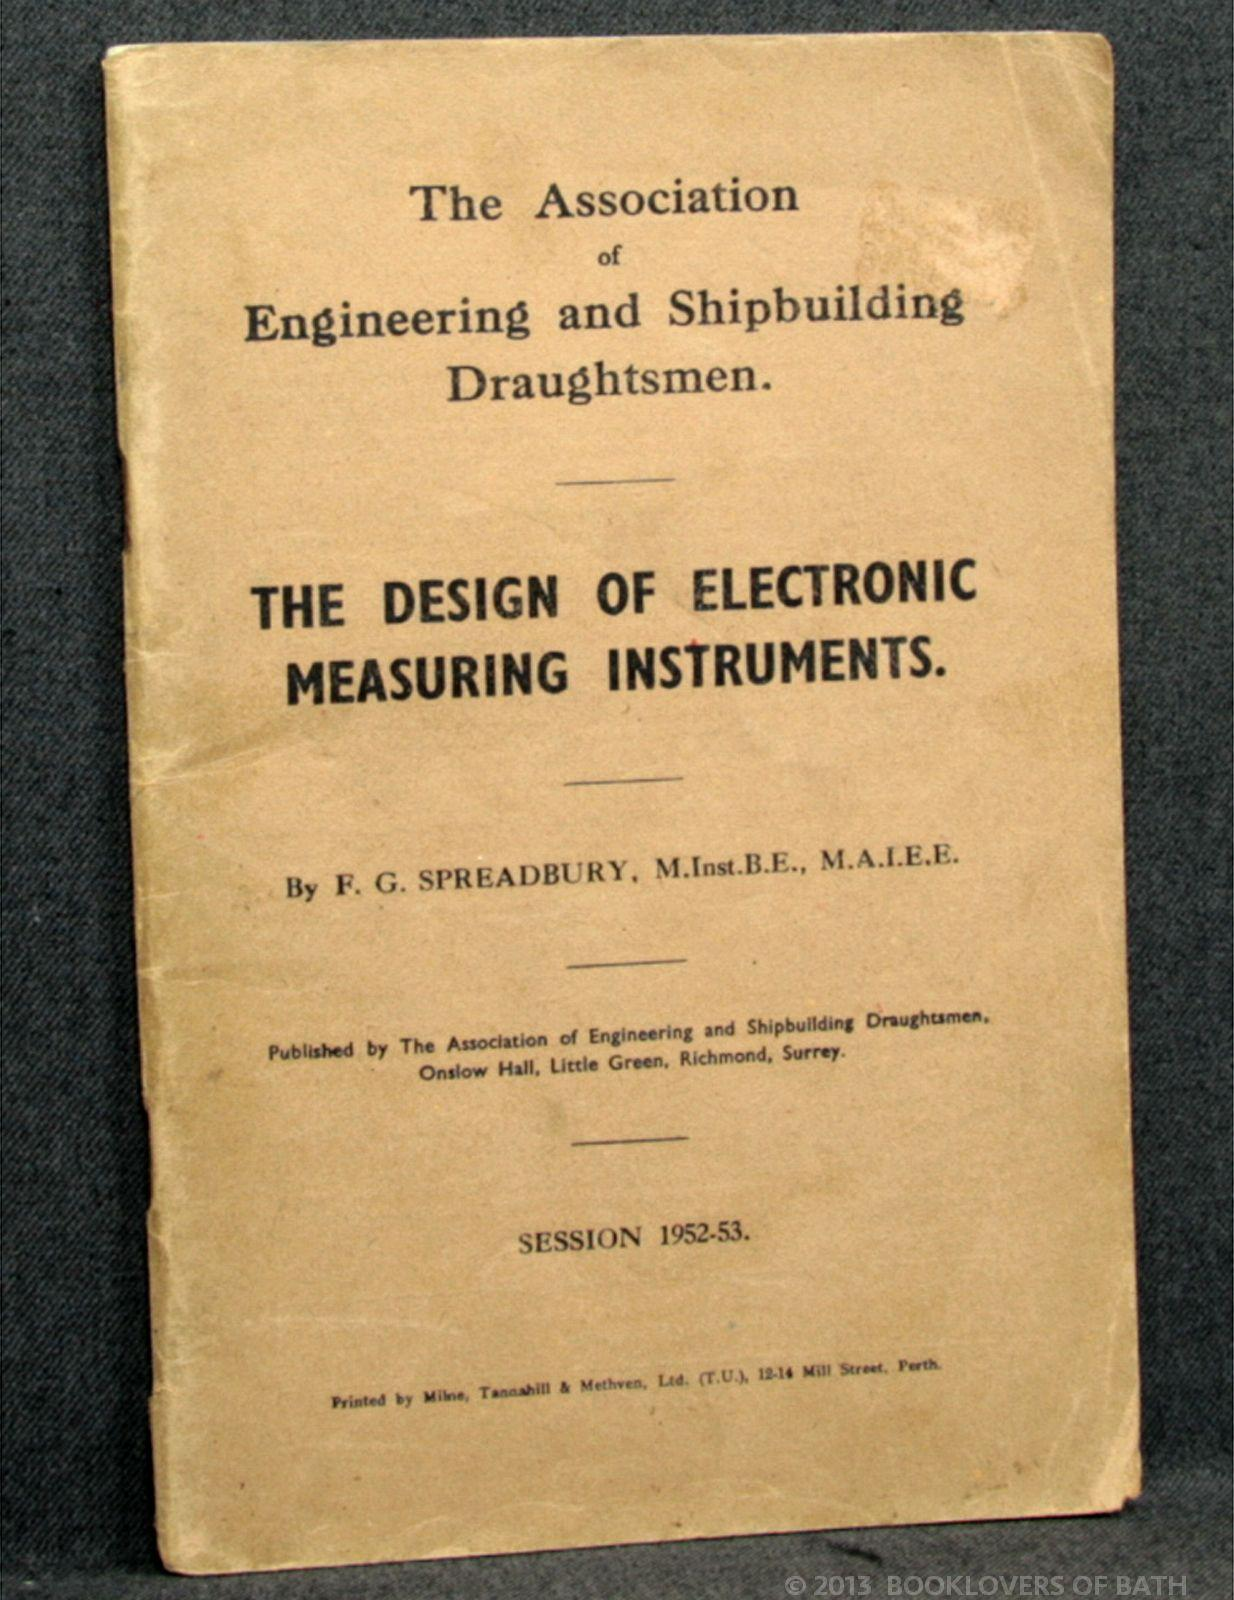 The Design Of Electronic Measuring Instruments Session 1952-53 - F. G. Spreadbury